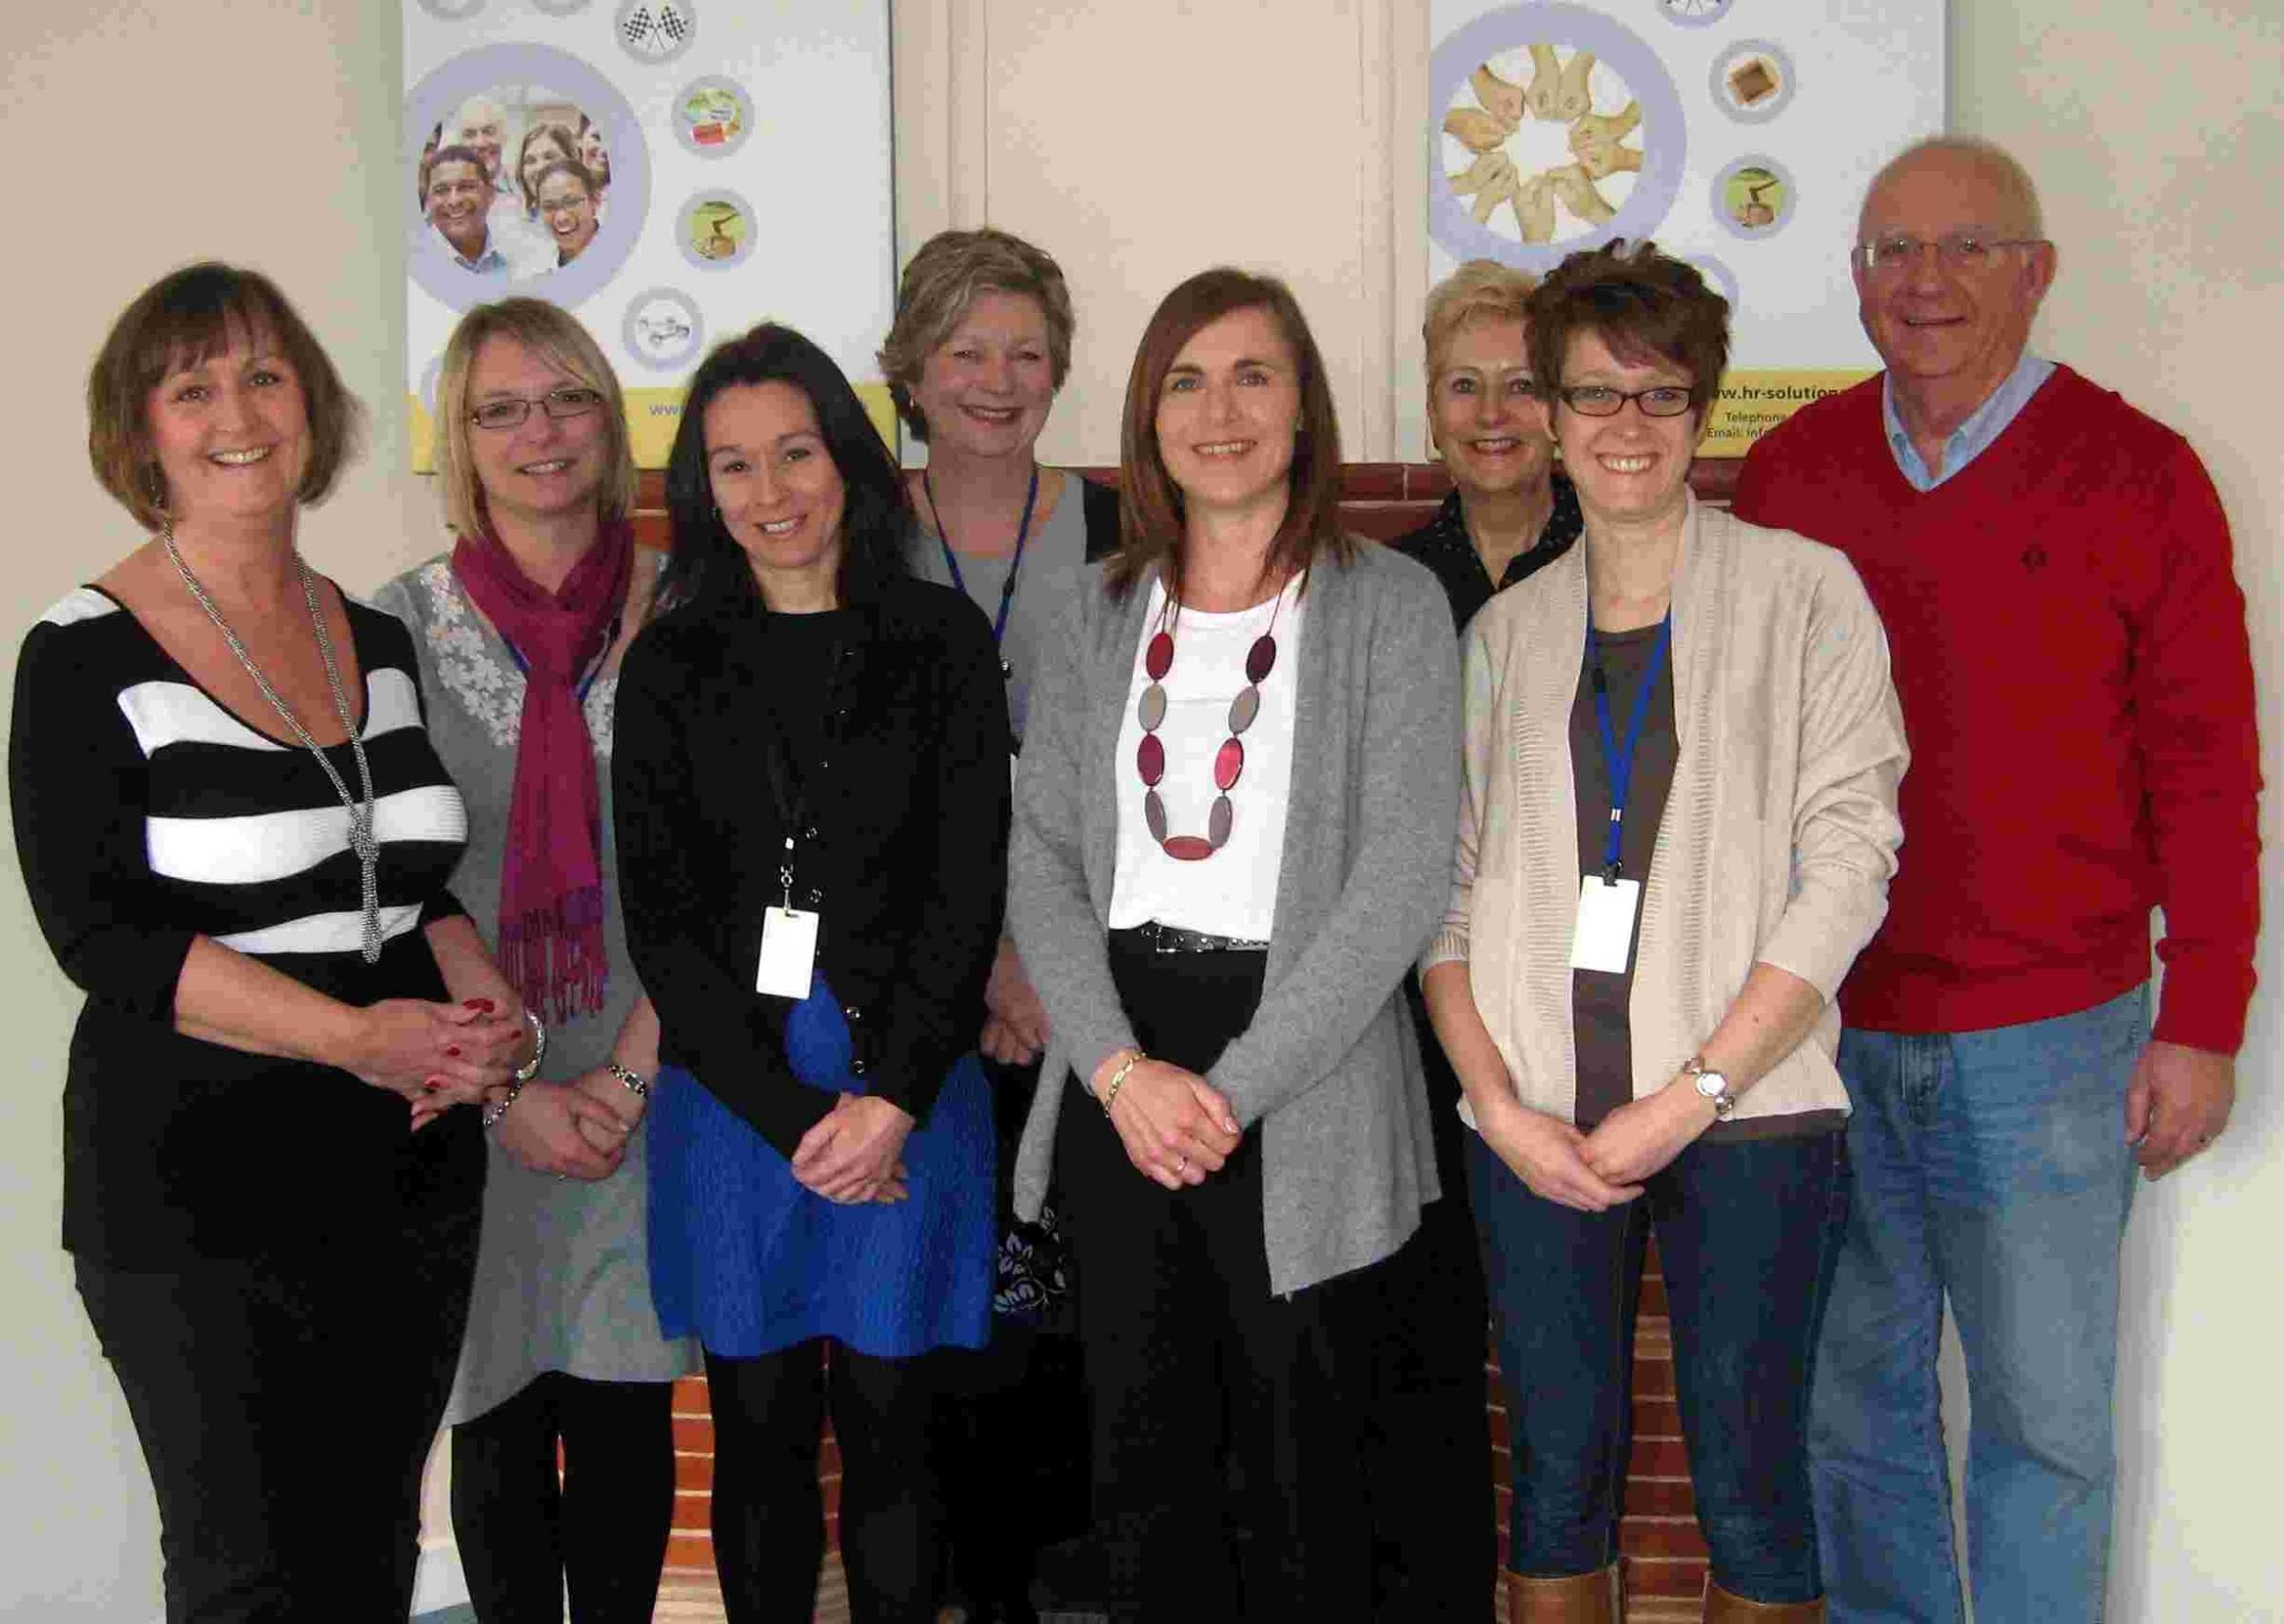 The HR Solutions team, with managing director Laura Davis on the far left